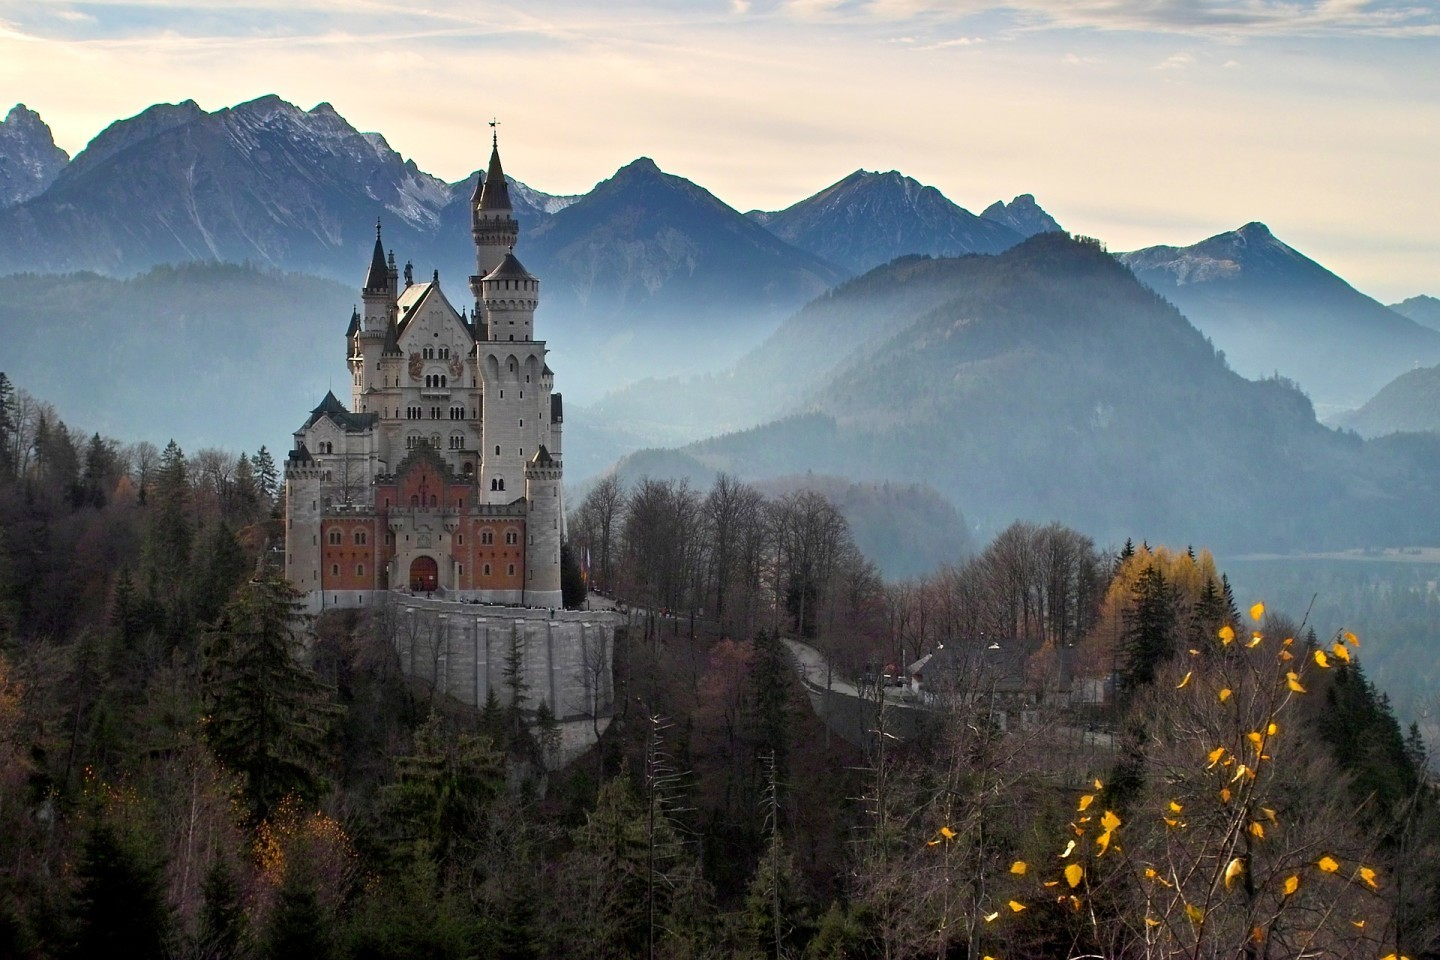 King Louis II Bavaria Castle with mountains and forest in the background